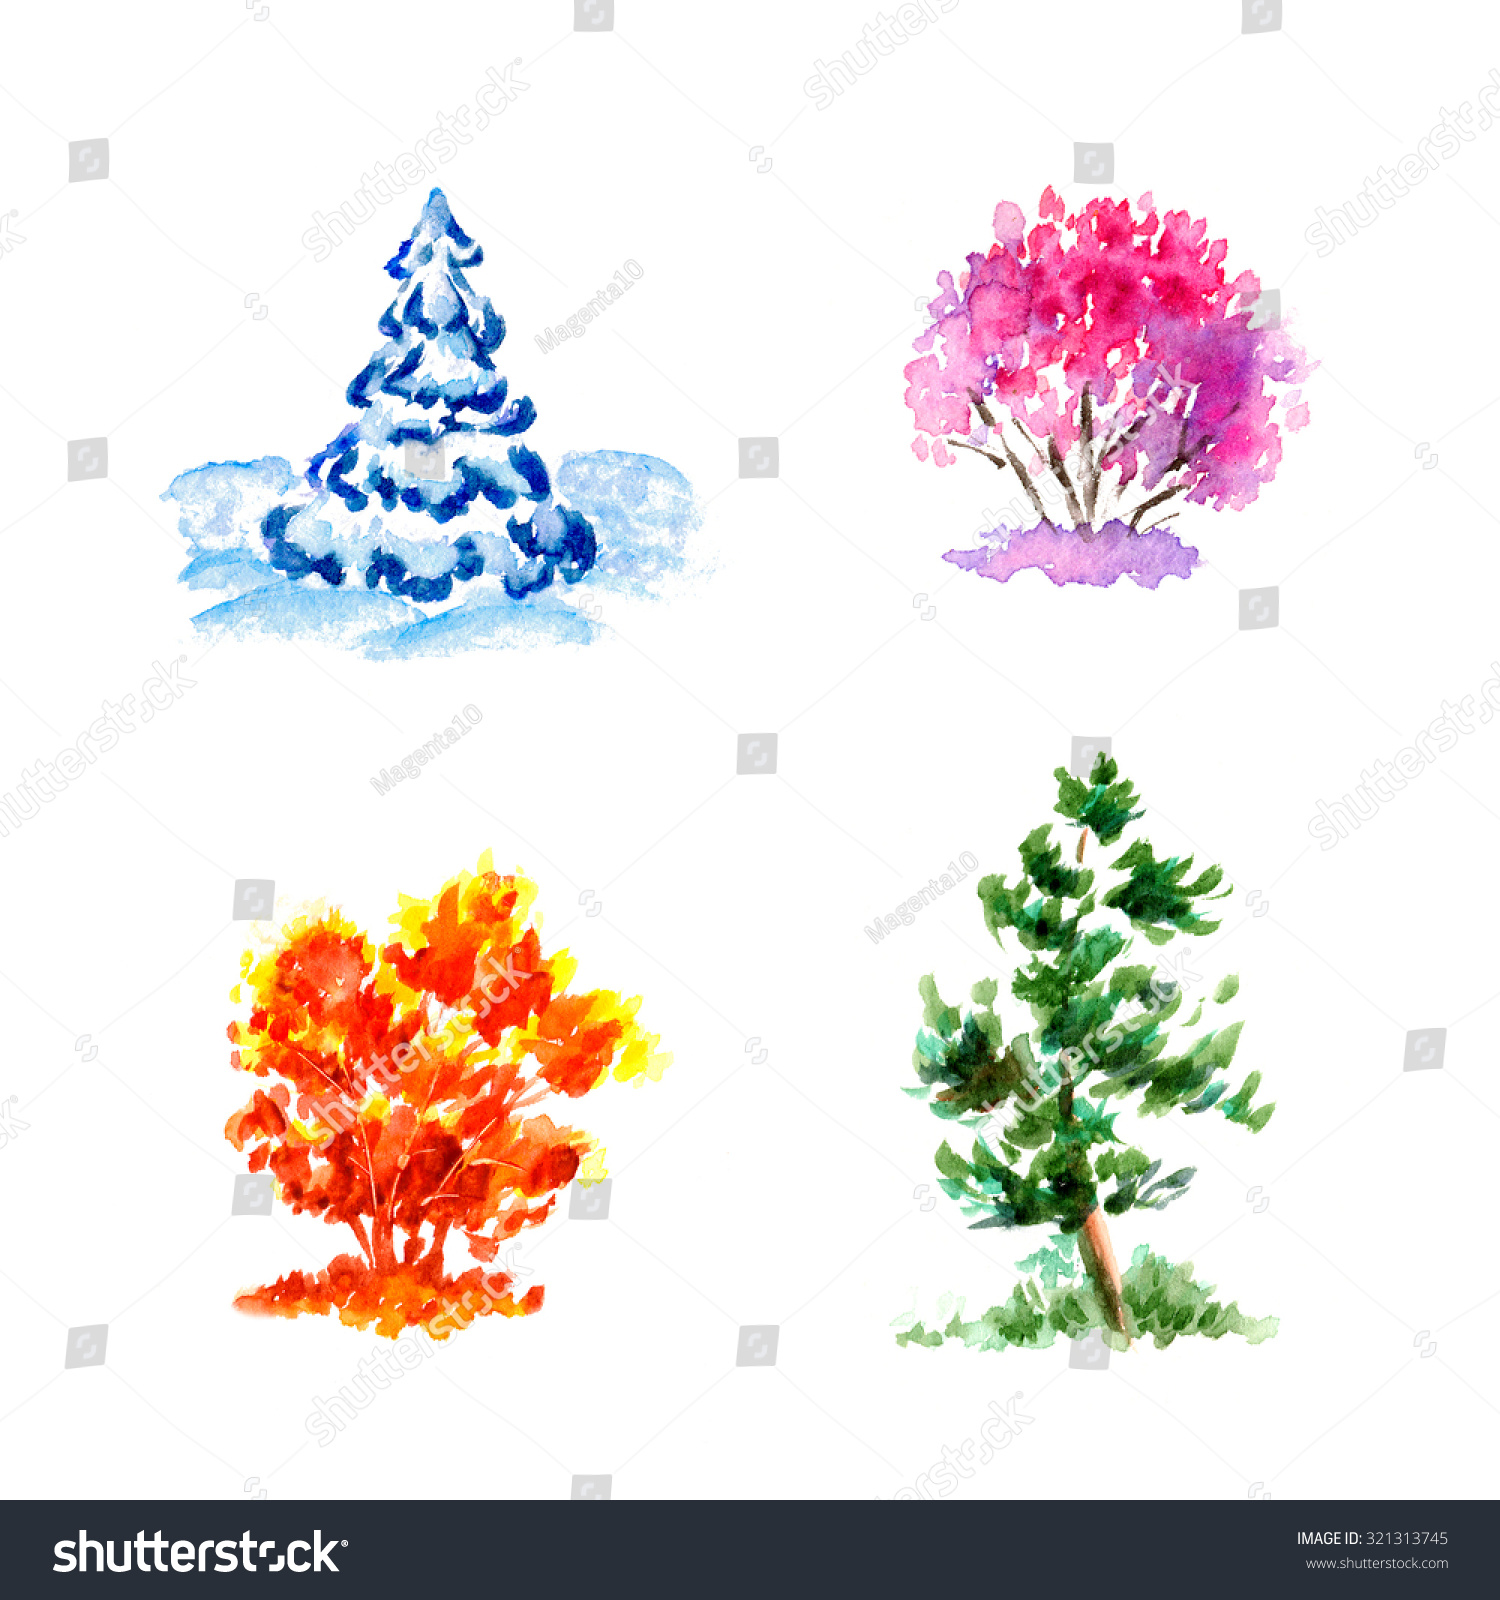 'spring' from the four seasons by Stream vivaldi - four seasons - spring by negy_evszak from desktop or your  mobile device.